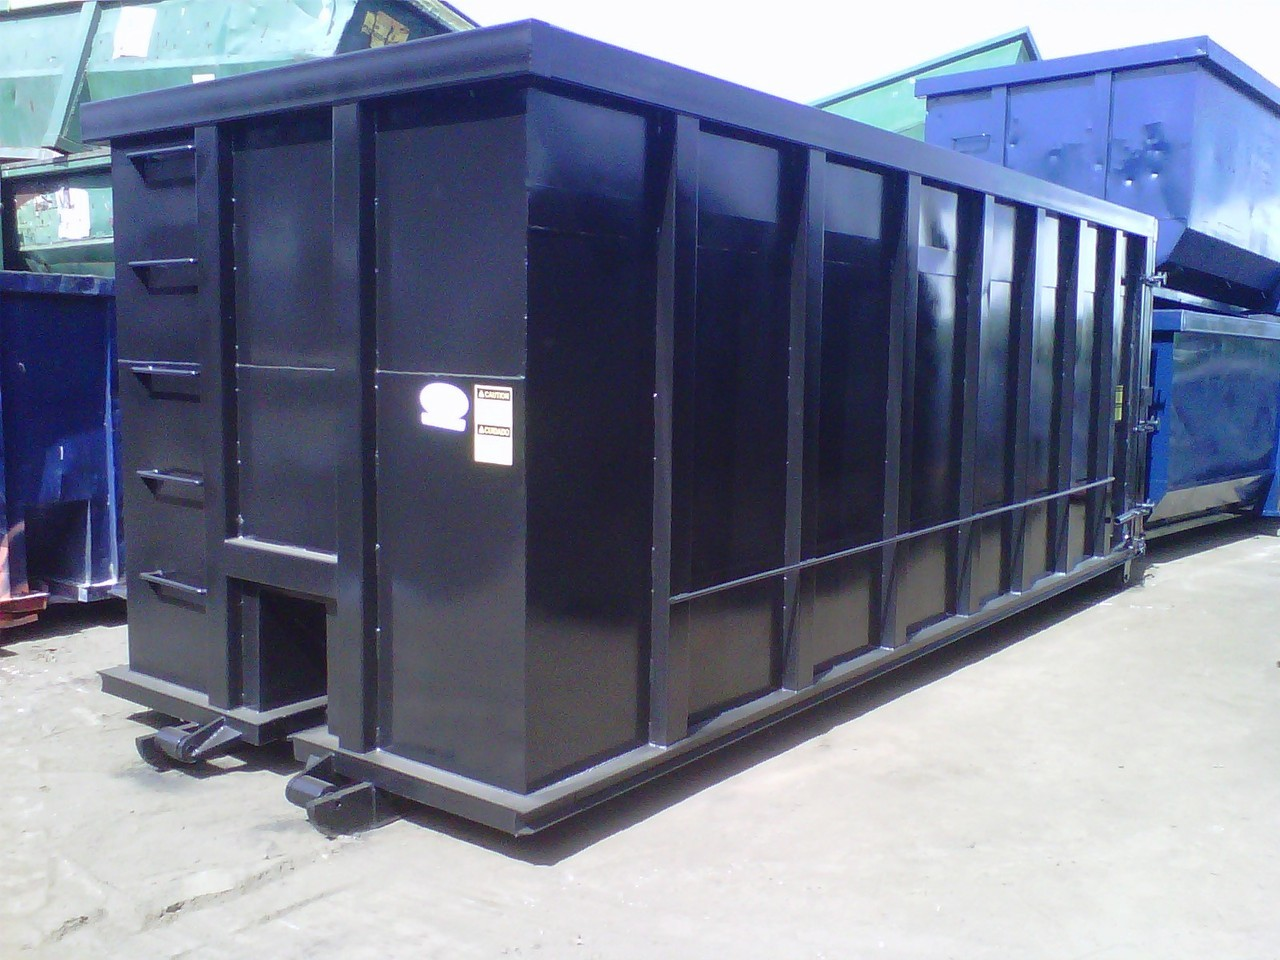 New, 2017, A PLUS, IES 60 CY RO-HD, Rolloff Containers